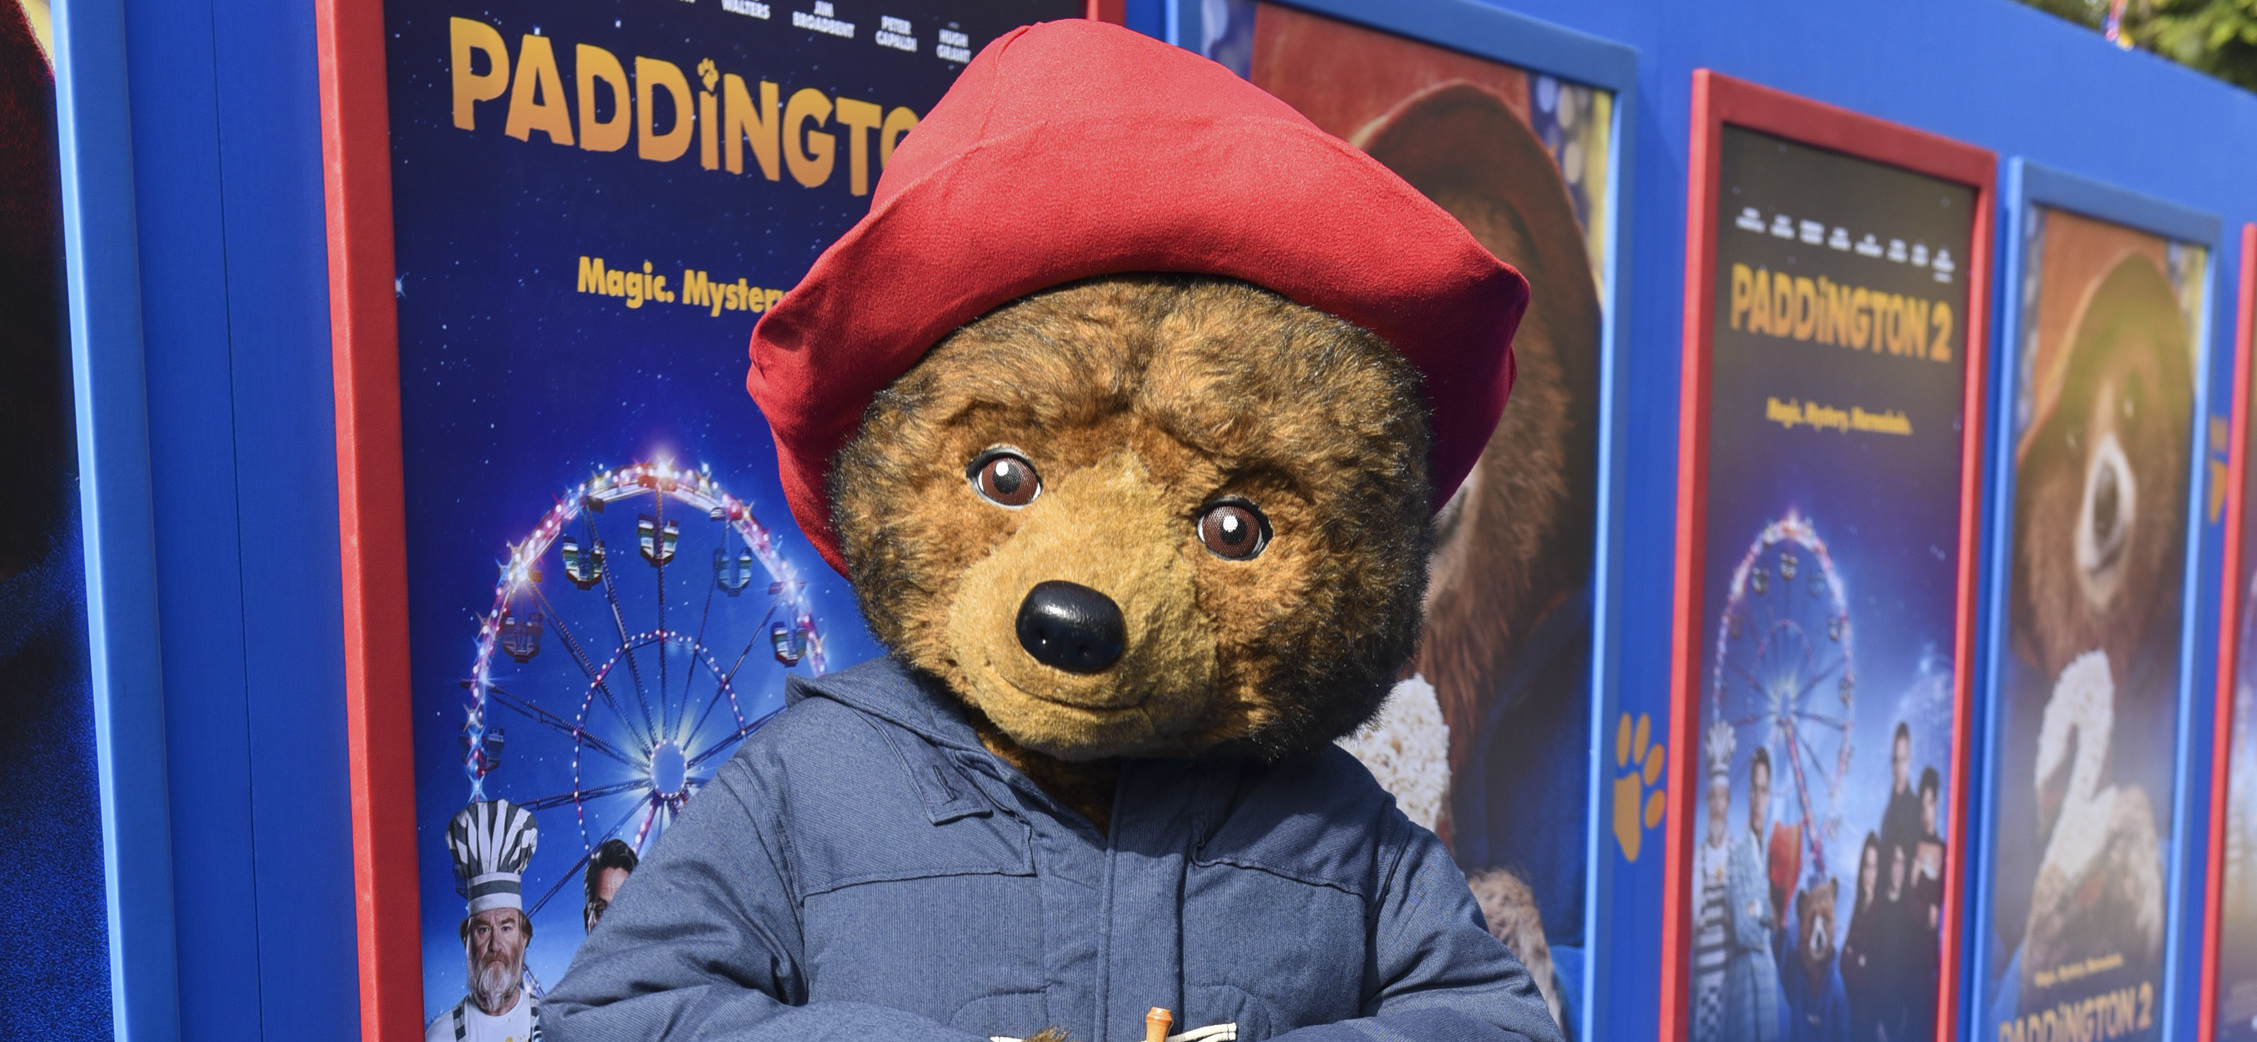 Publisher Who Discovered Paddington Bear Has Died